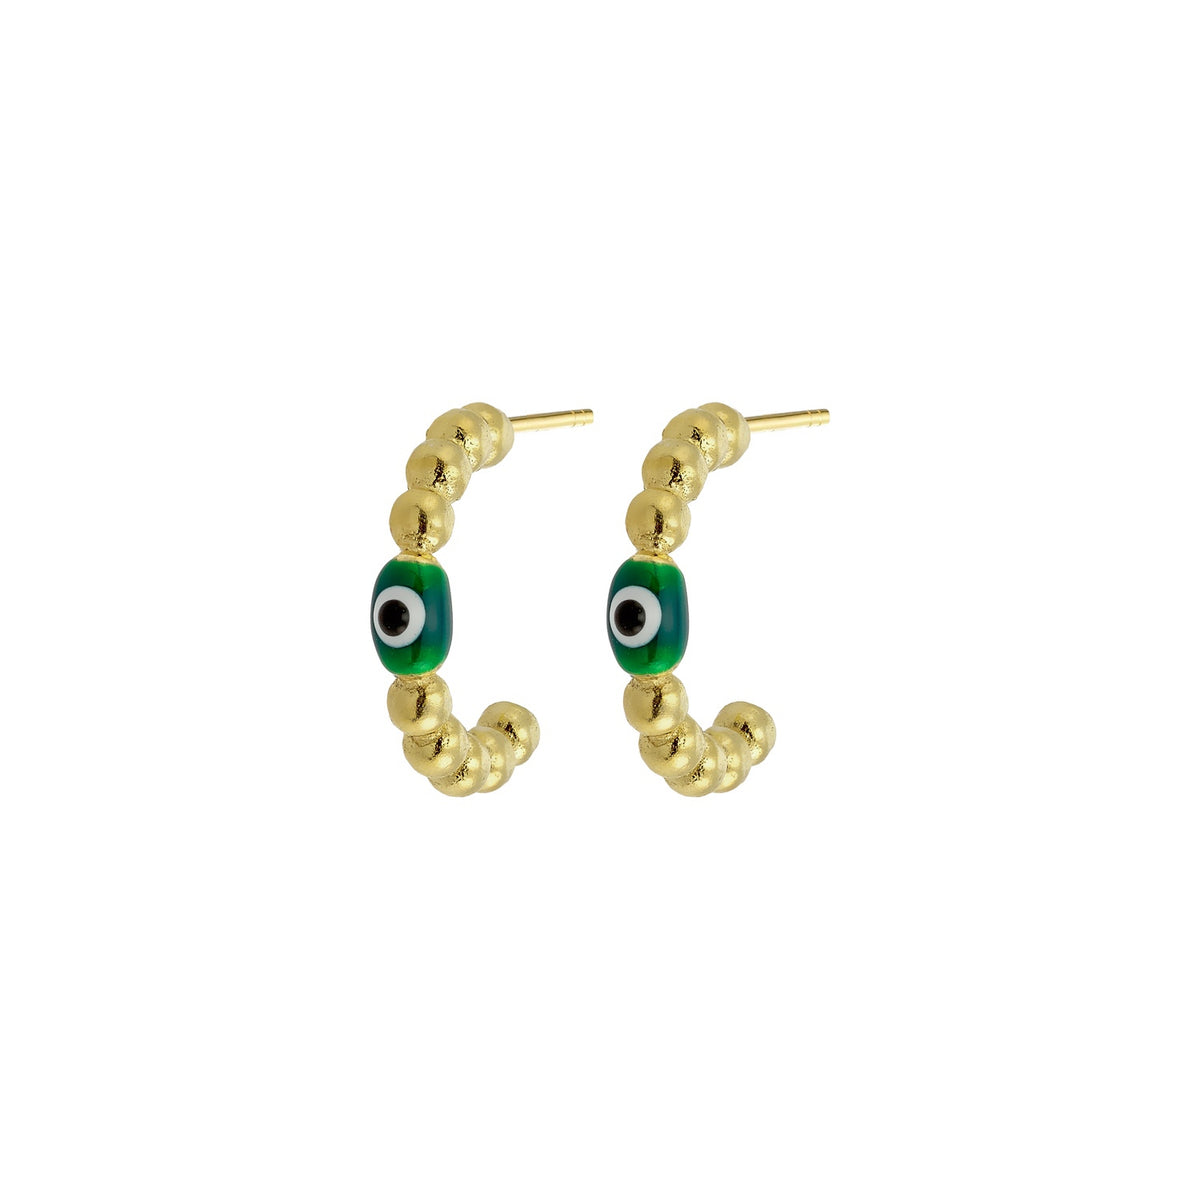 MATI | Bubble Hoops | Green Enamel | 18K Gold Plated 925 Silver